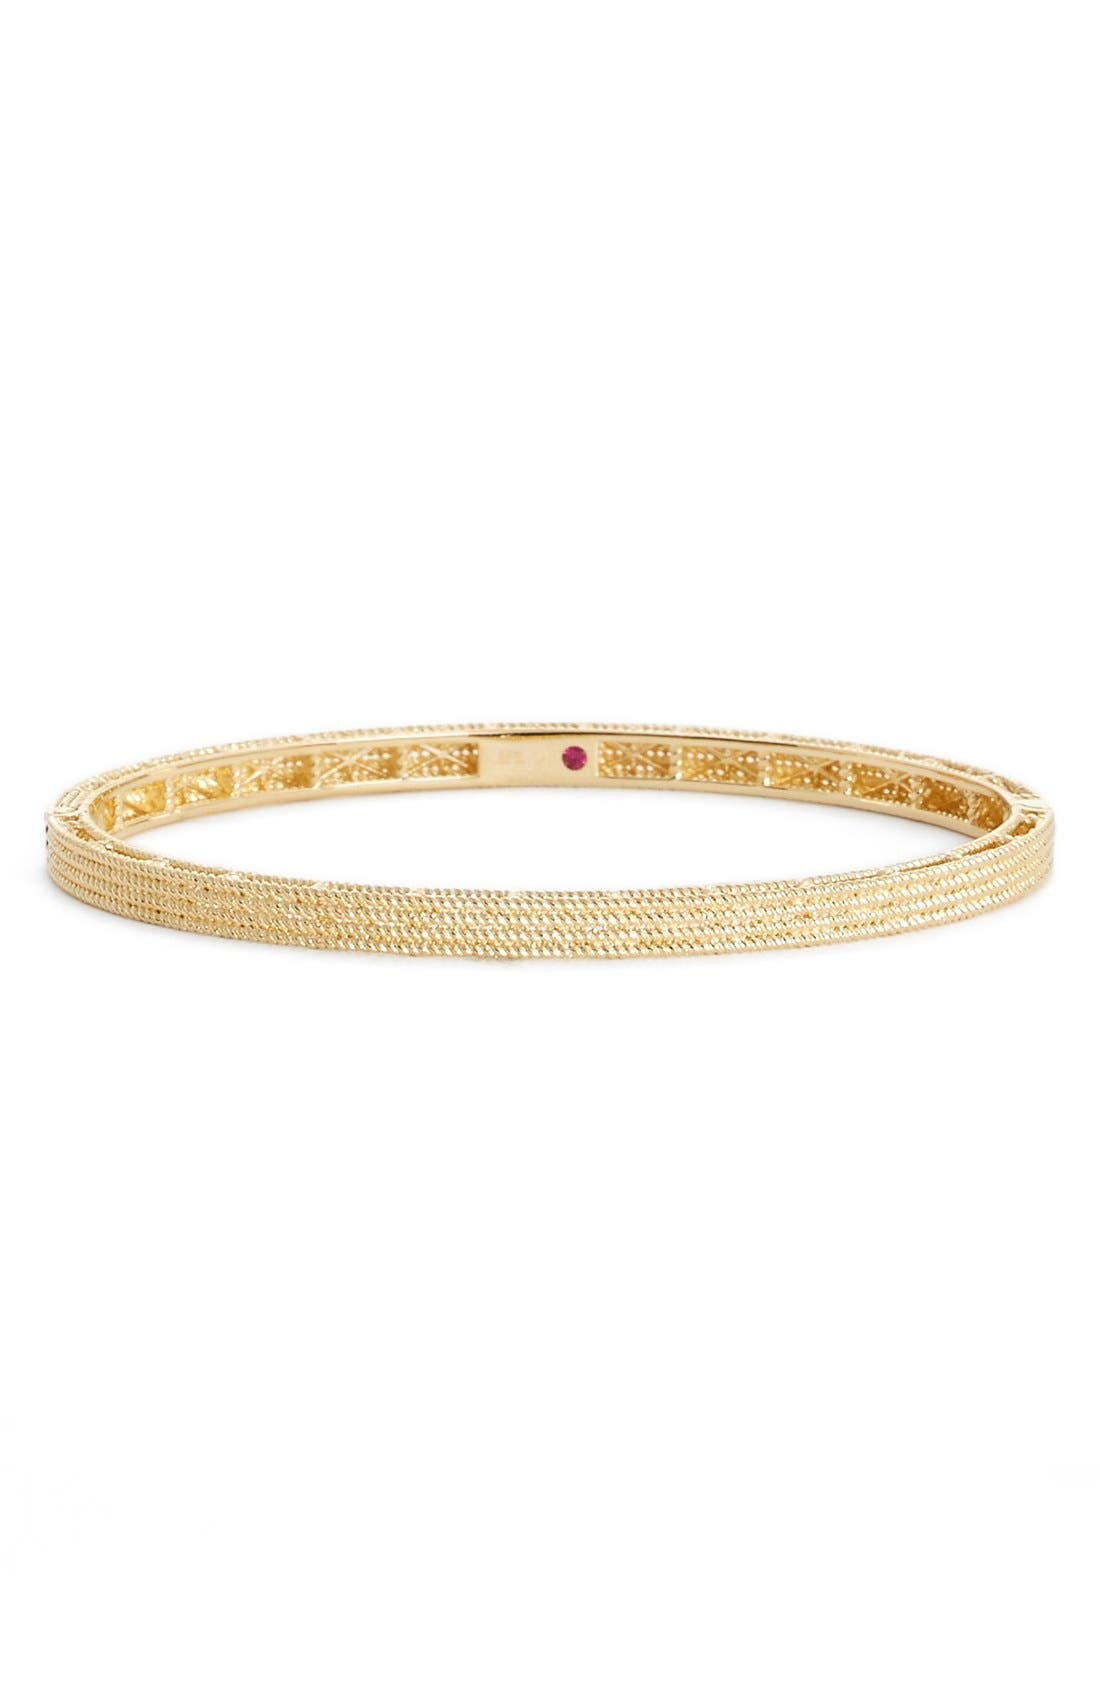 Roberto Coin Symphony Collection Gold Stacked Barocco Bangle in 18K Rose Gold jb8O1lk43W